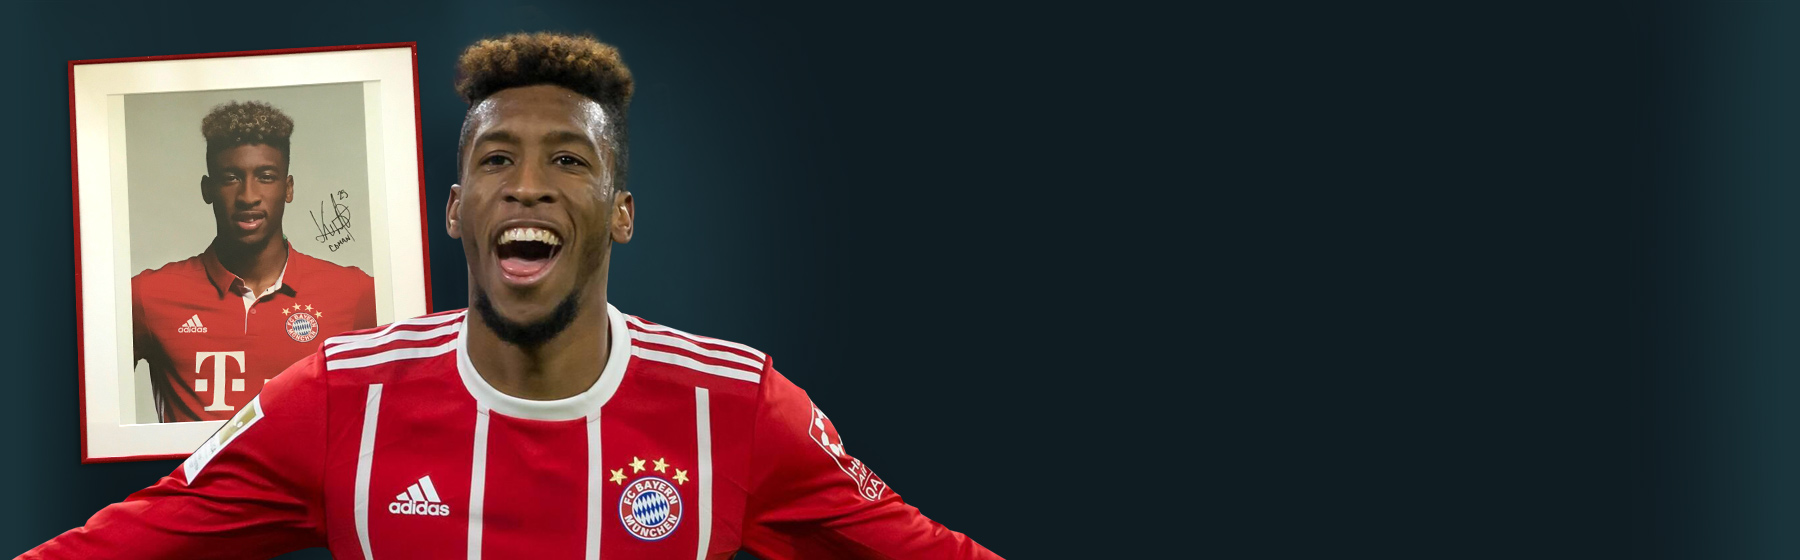 Kingsley Coman FC Bayern Munich cheers and player portrait in the background image-header